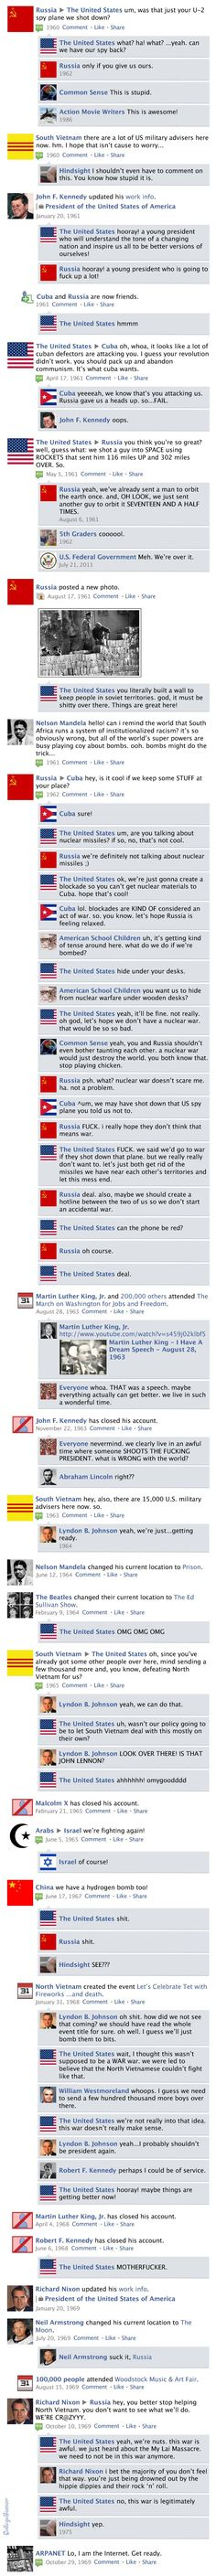 Facebook Newsfeed History - 1960s